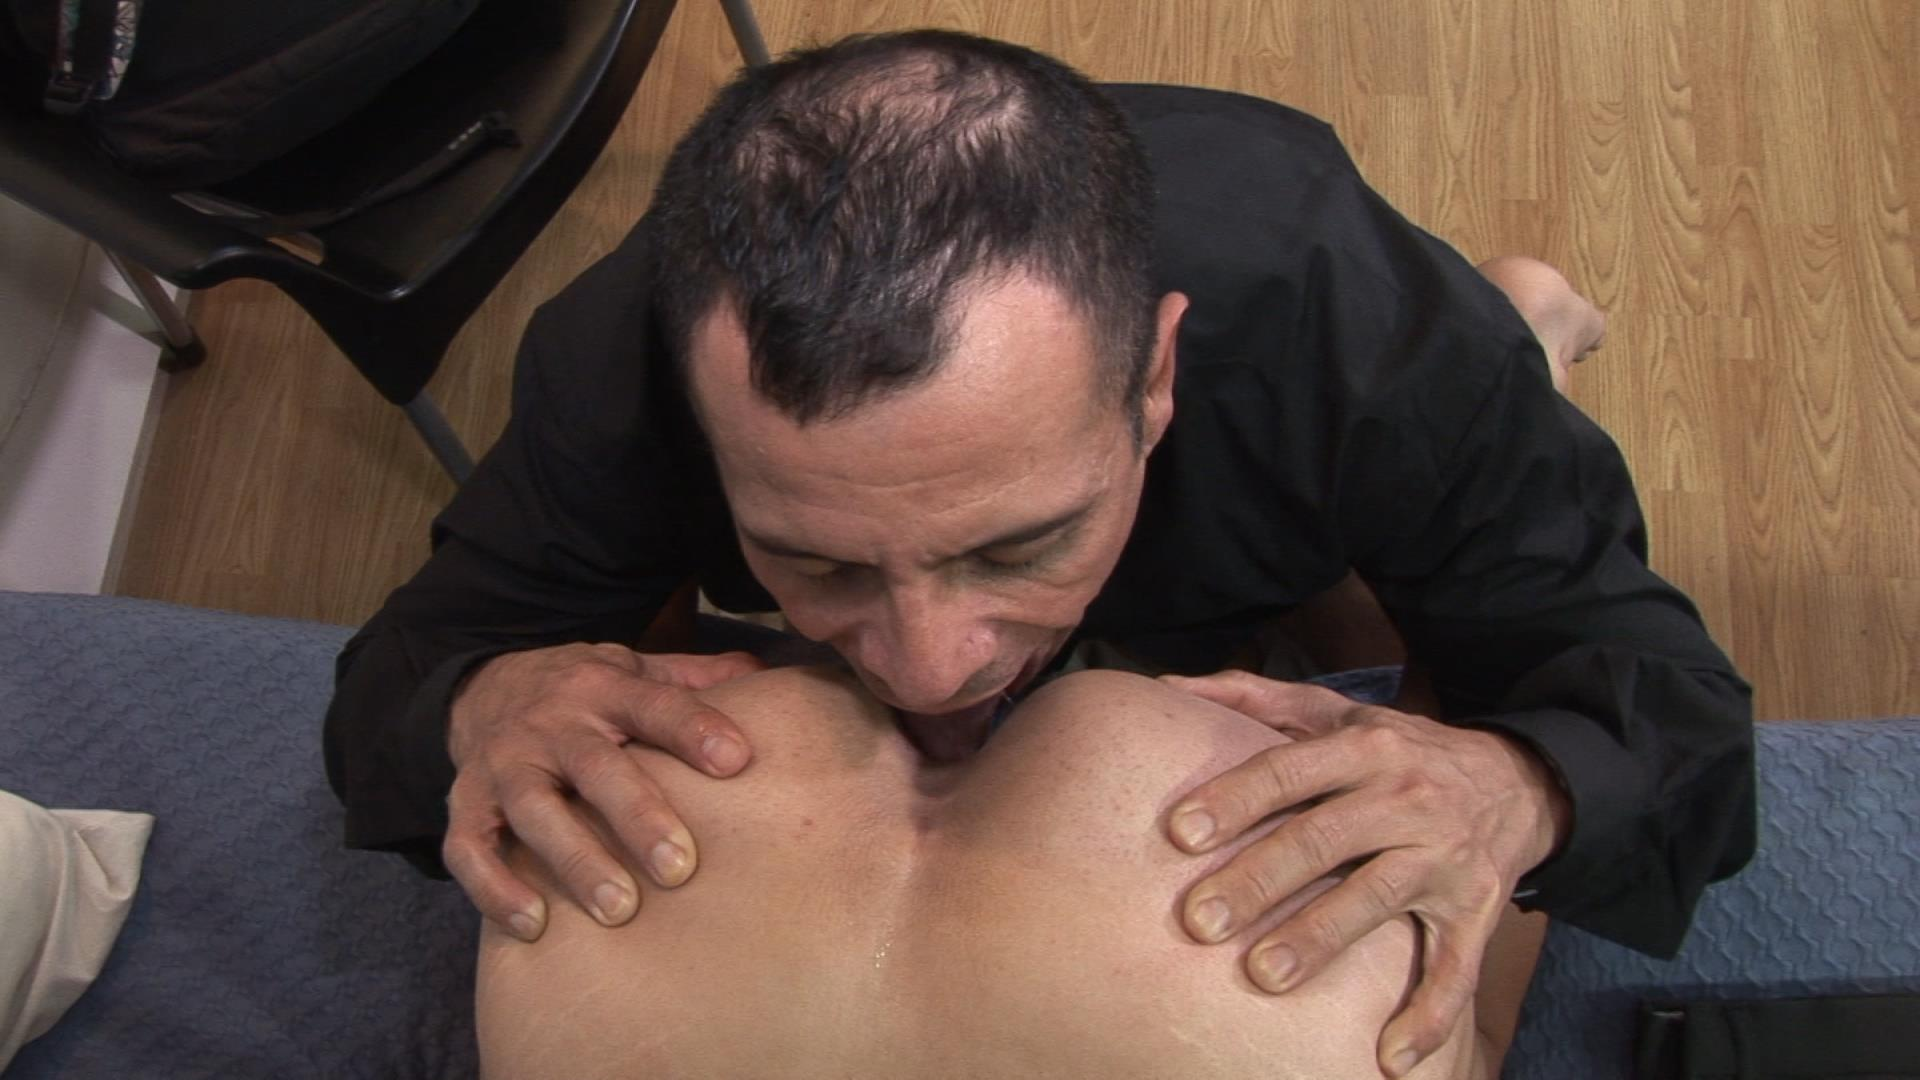 Bareback-Me-Daddy-Gay-Priest-Fucking-A-Student-12 Getting Barebacked By An Older Catholic Priest While In Boarding School